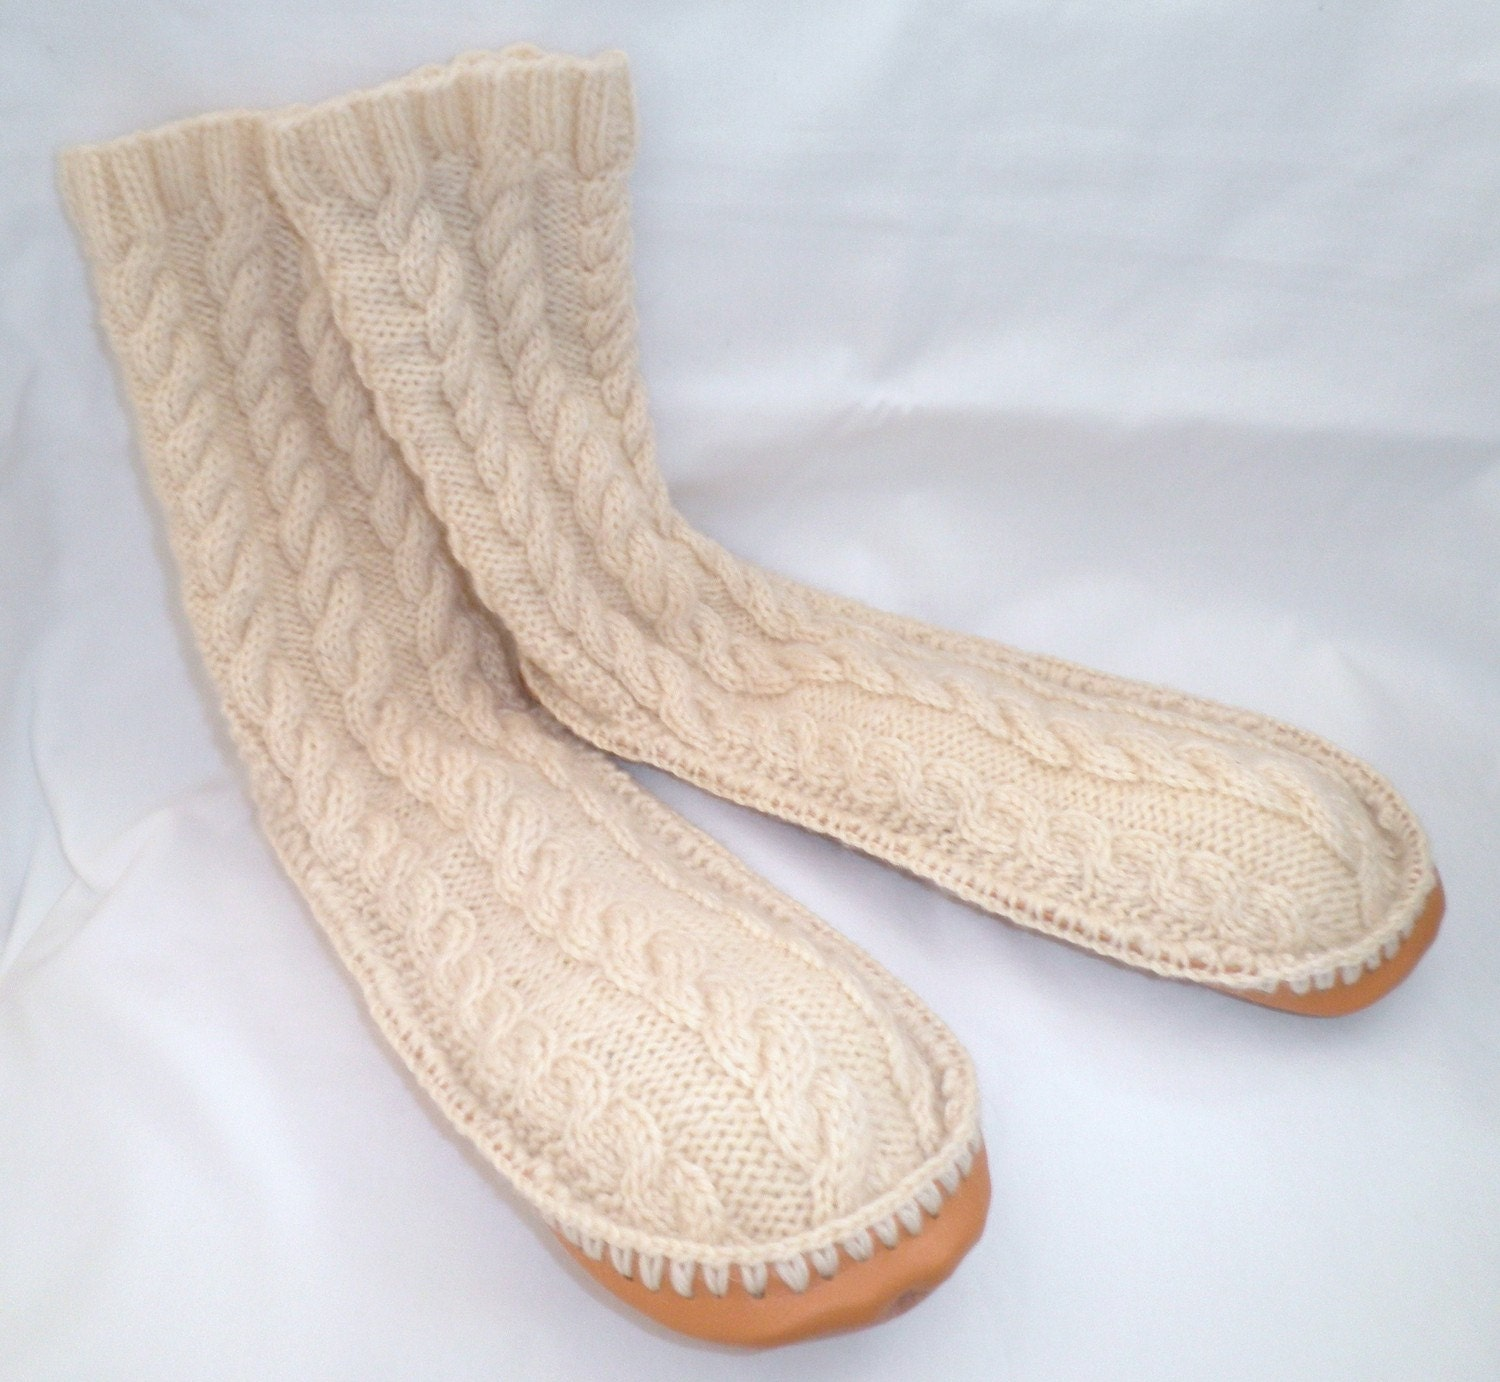 Knitting Patterns For Slippers With Leather Soles : Adult Hand Knit Cream wool Slipper Socks Leather by nanaswoolies